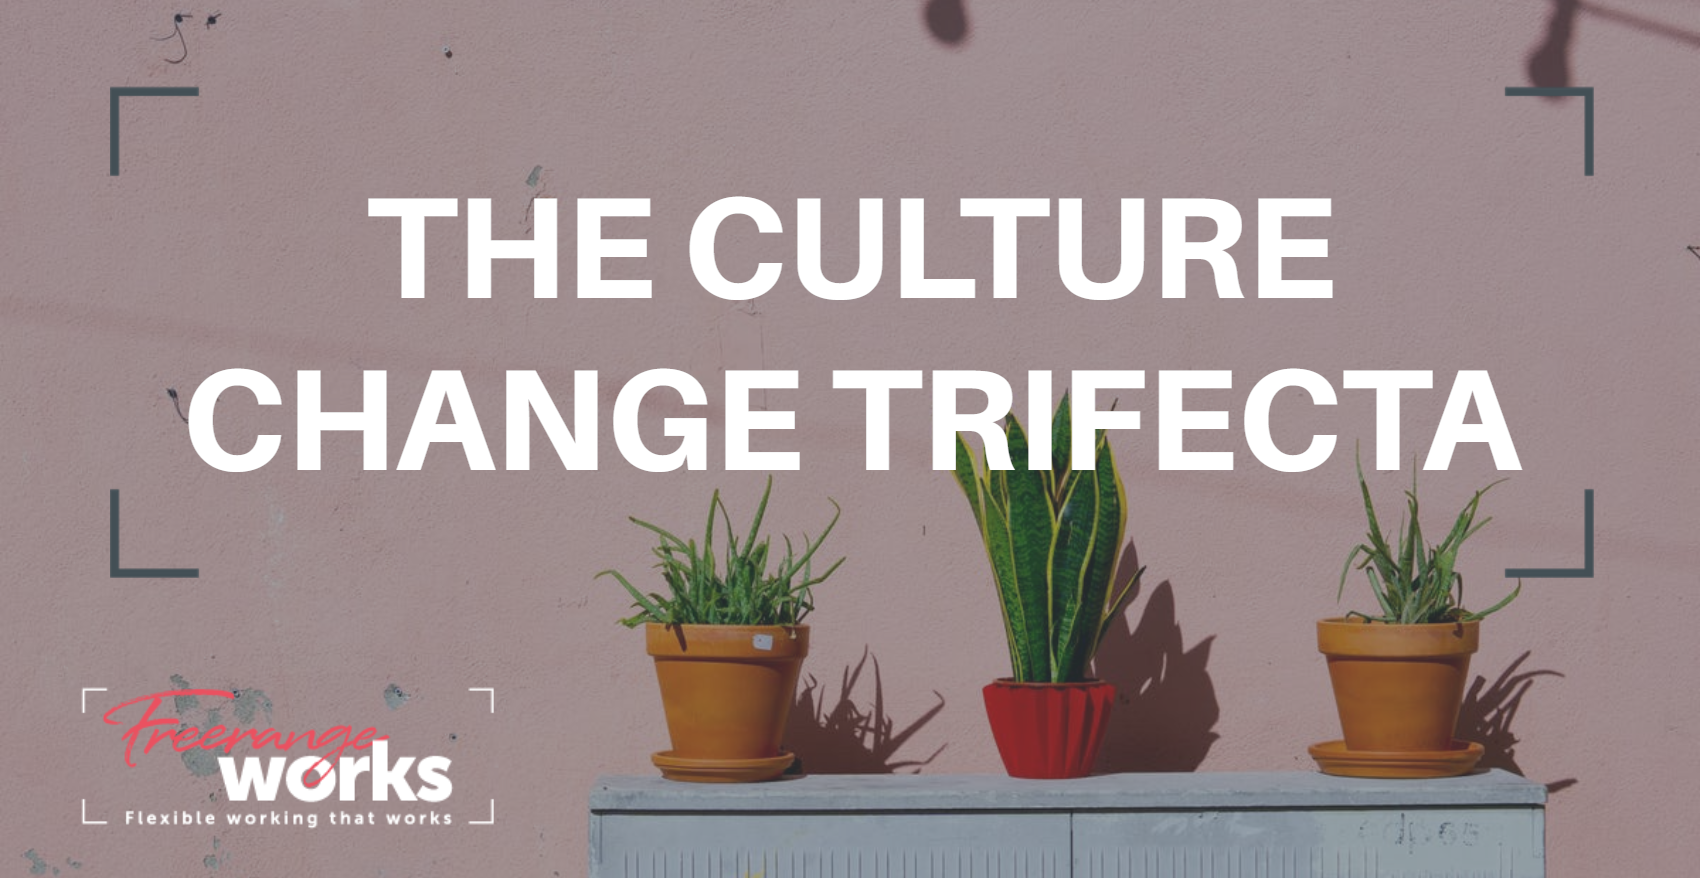 The Culture Change Trifecta